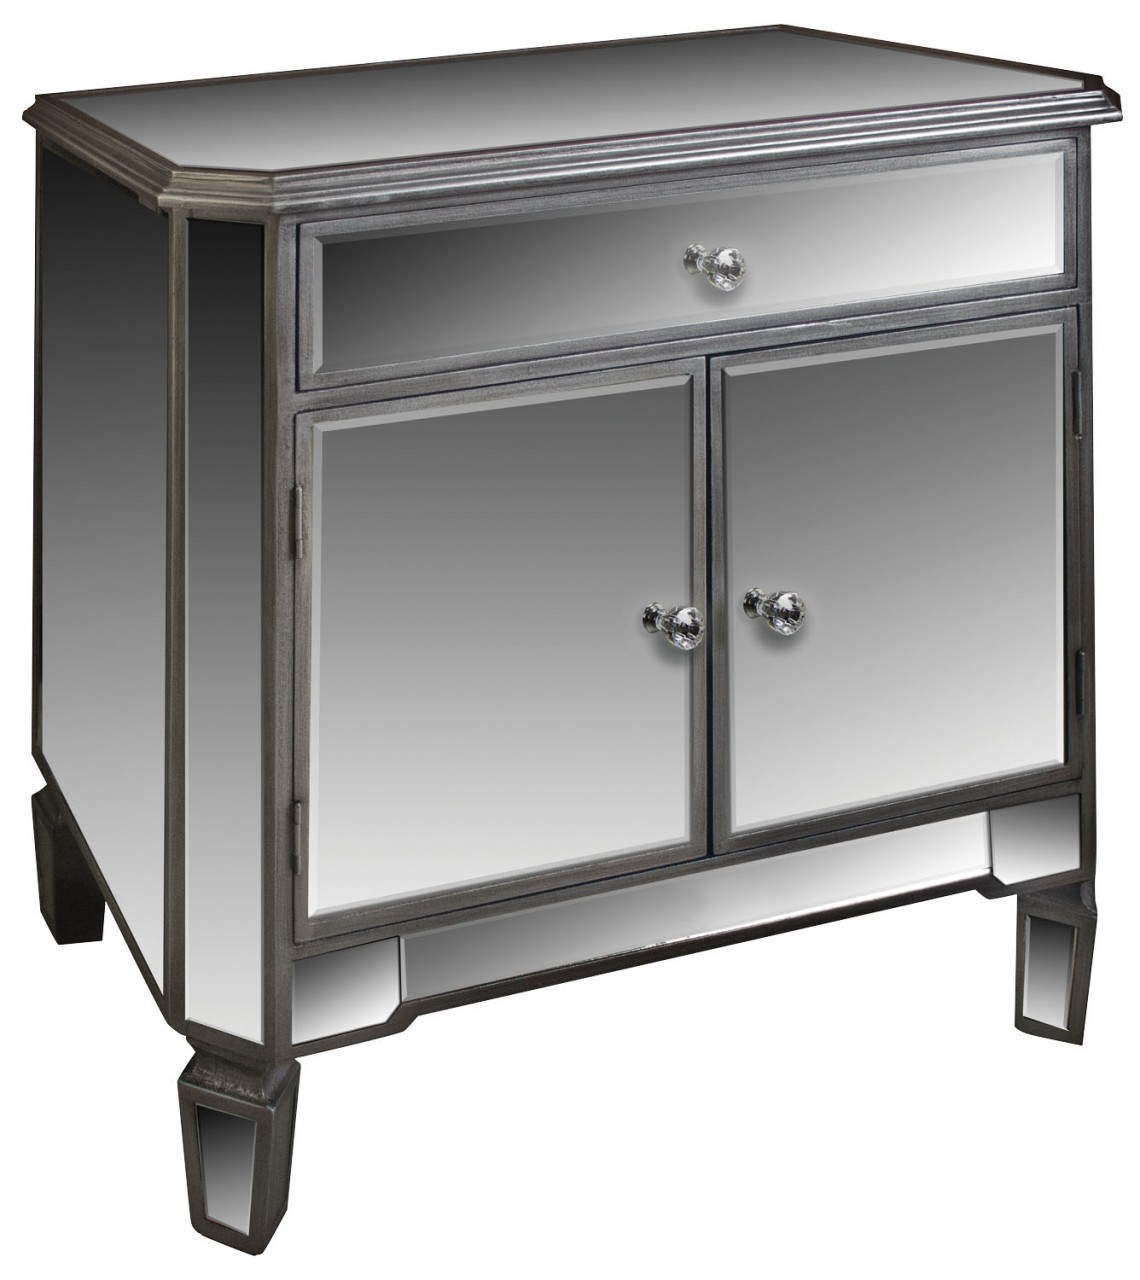 Silver mirrored 1 drawer sideboard cupboard unit for Mirrored drawer unit